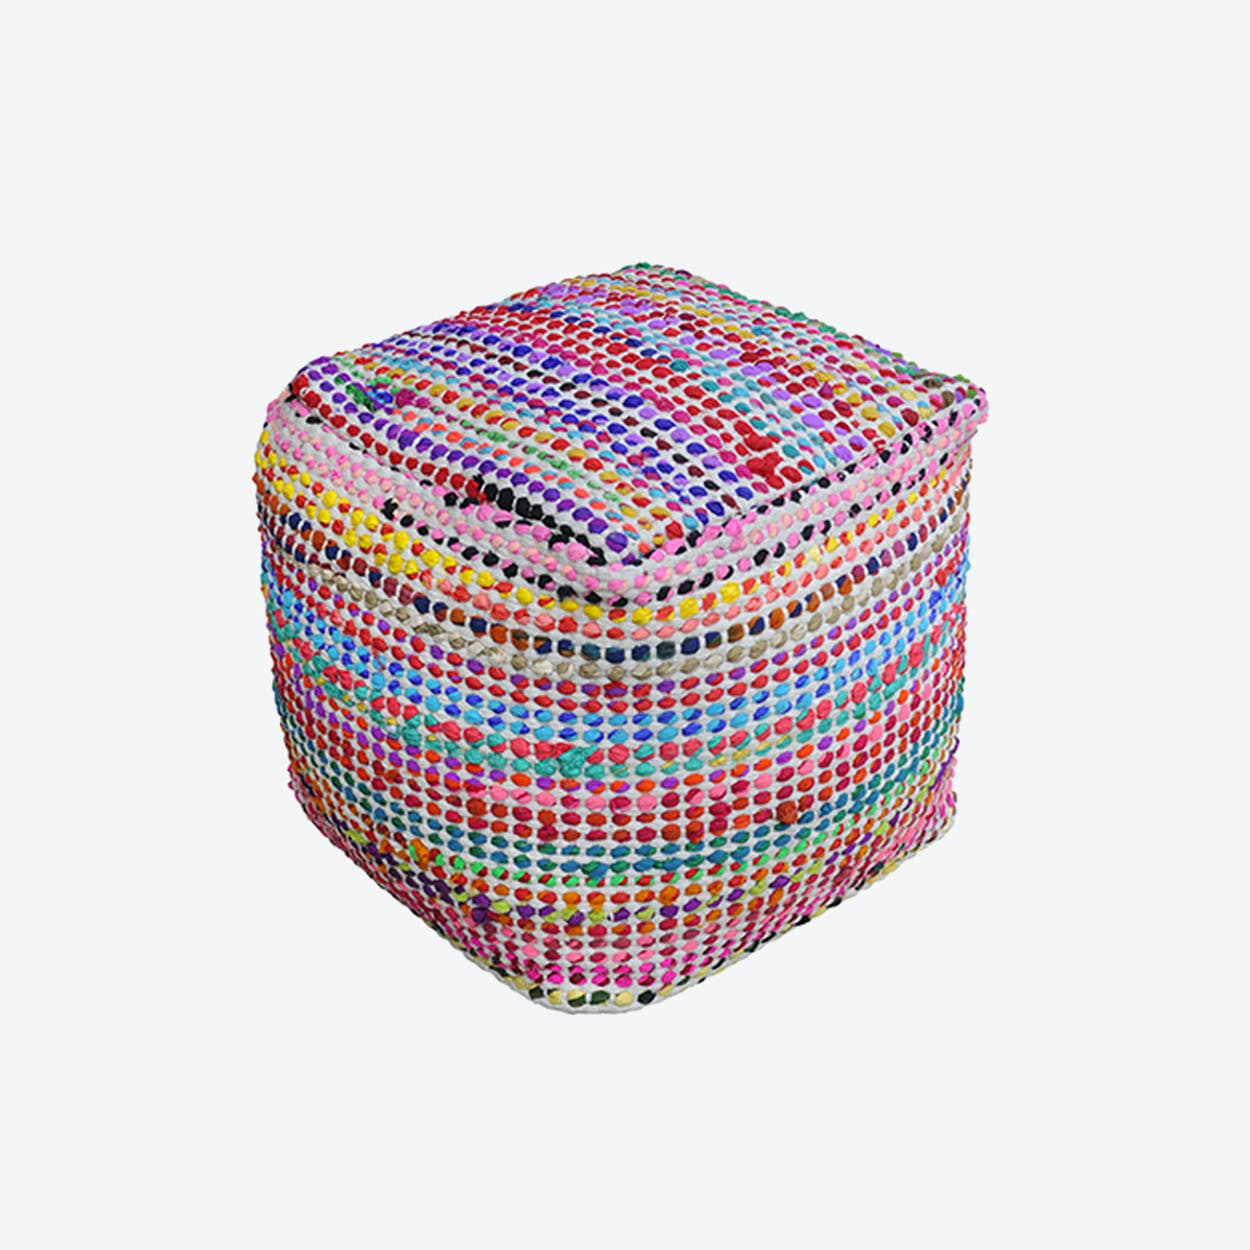 MADRID Pouf in Ecru (40x40x40)